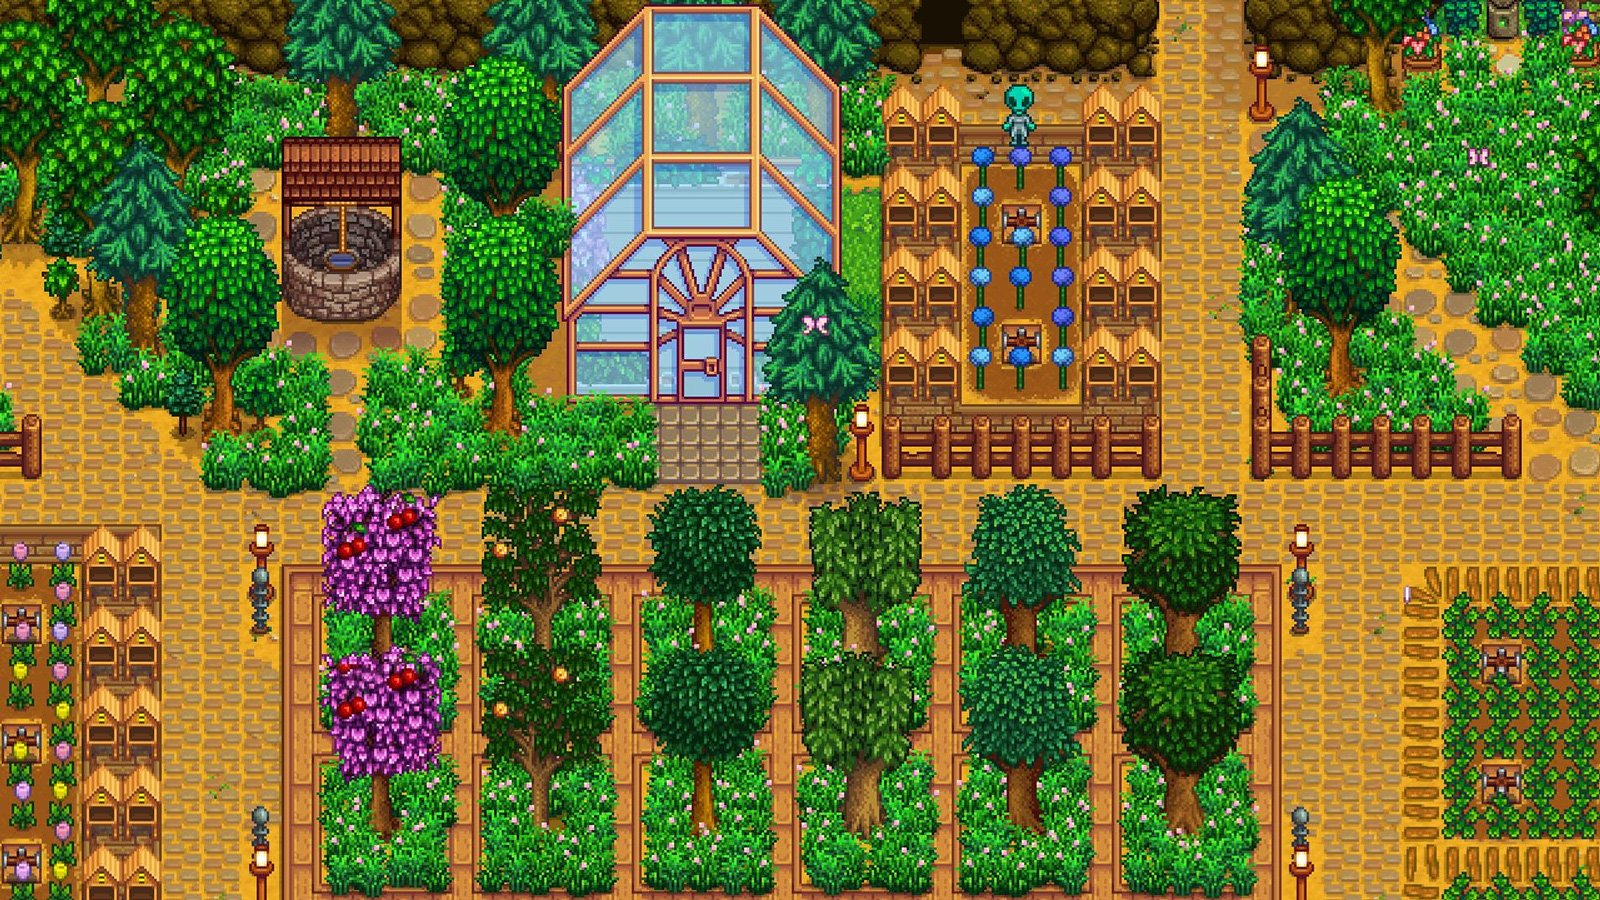 You'll want room for banana trees in Stardew Valley's 1.5 update screenshot